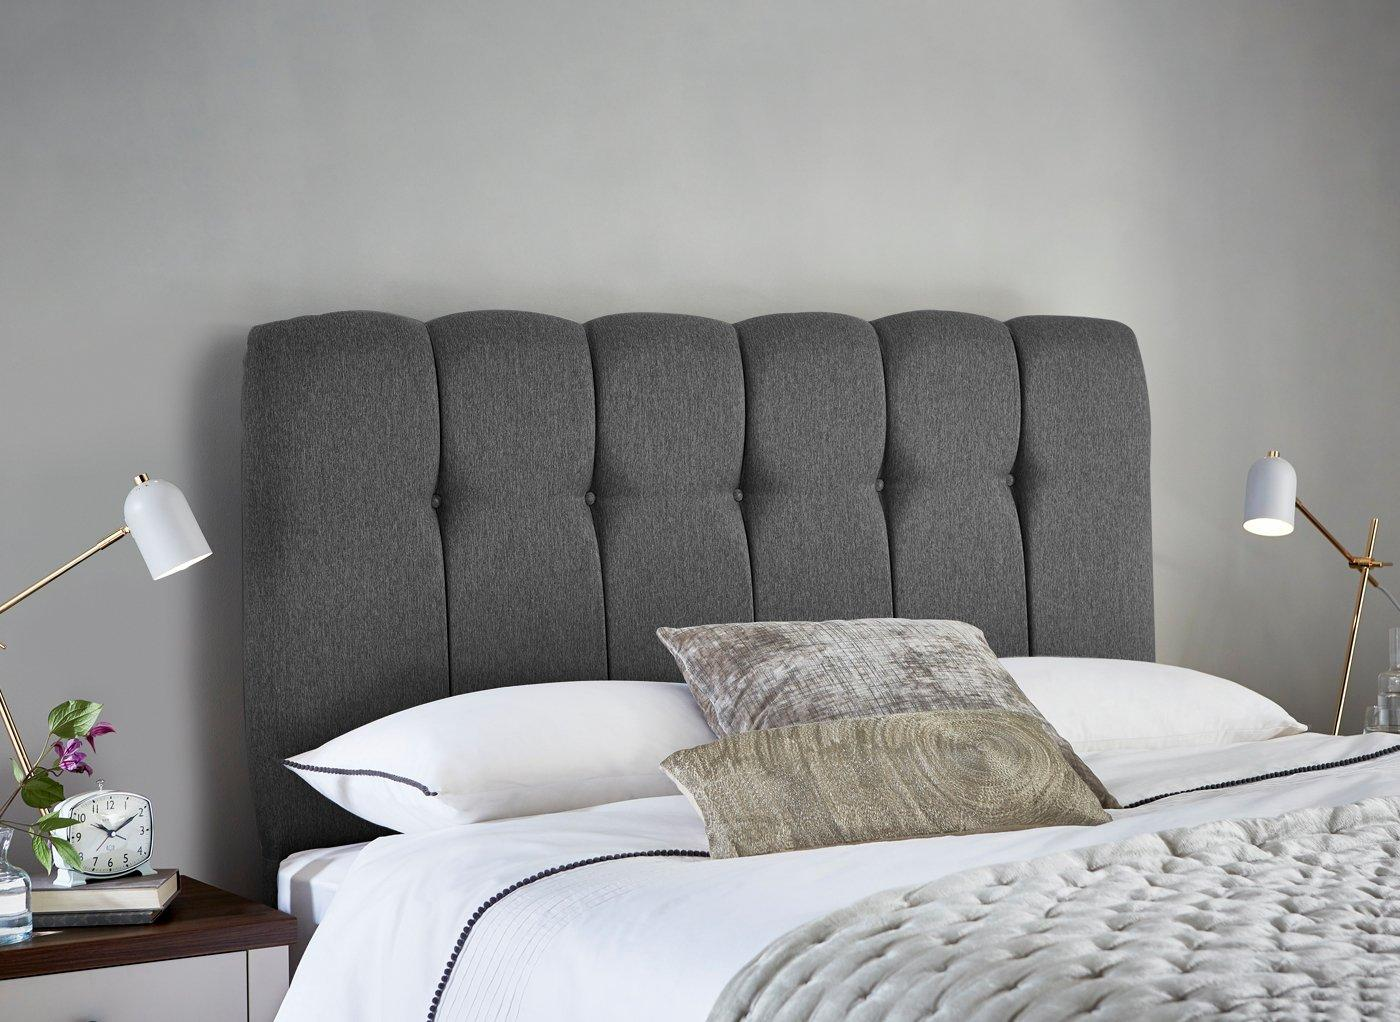 Queensland Headboard 3'0 Single GREY